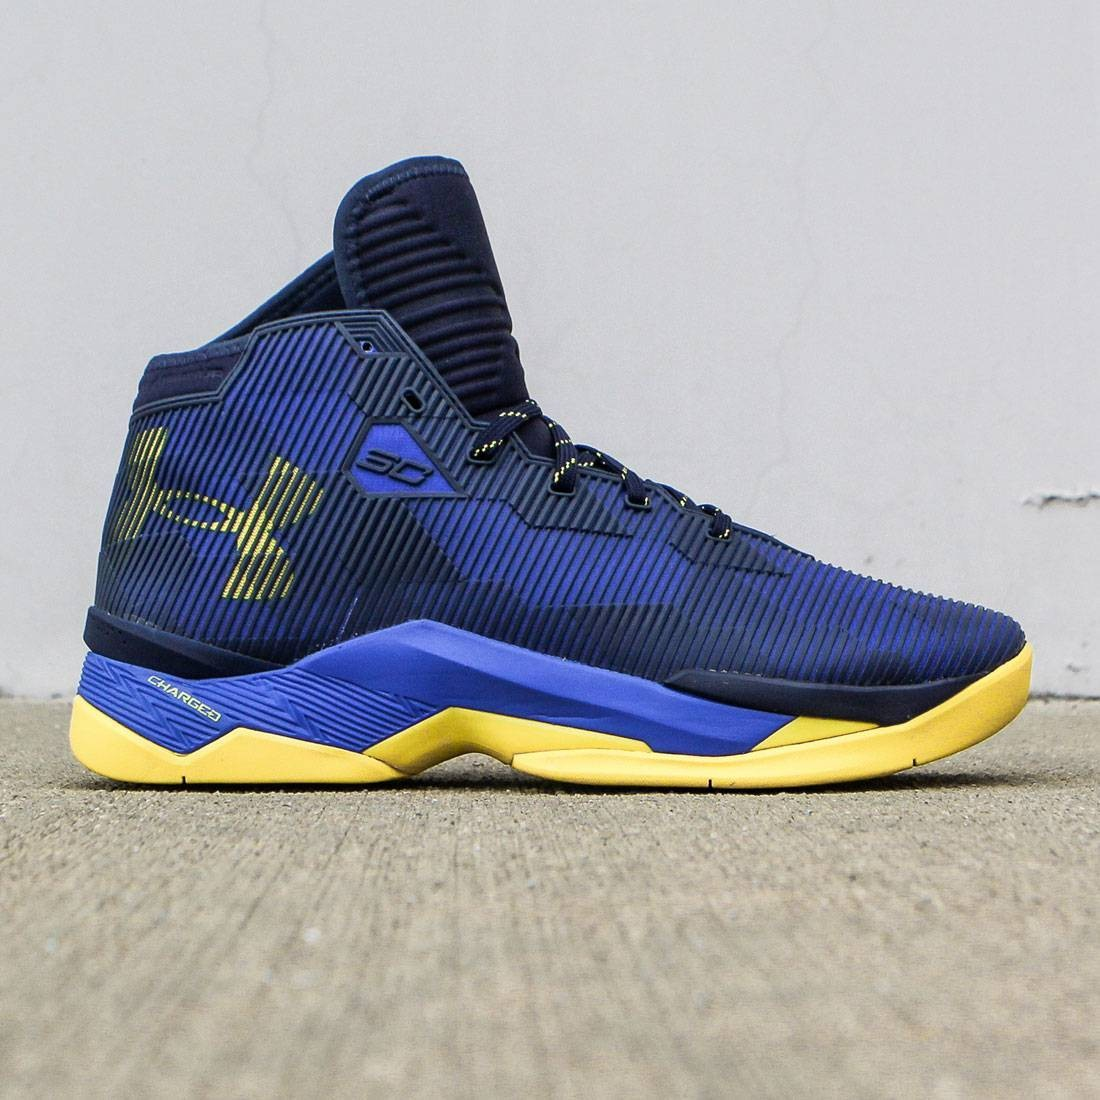 【海外限定】カリー アンダーアーマー 2.5 メンズ靴 スニーカー 【 CURRY UNDER ARMOUR X STEPH MEN DUB NATION ROYAL PLAYOFF PE BLUE YELLOW 】